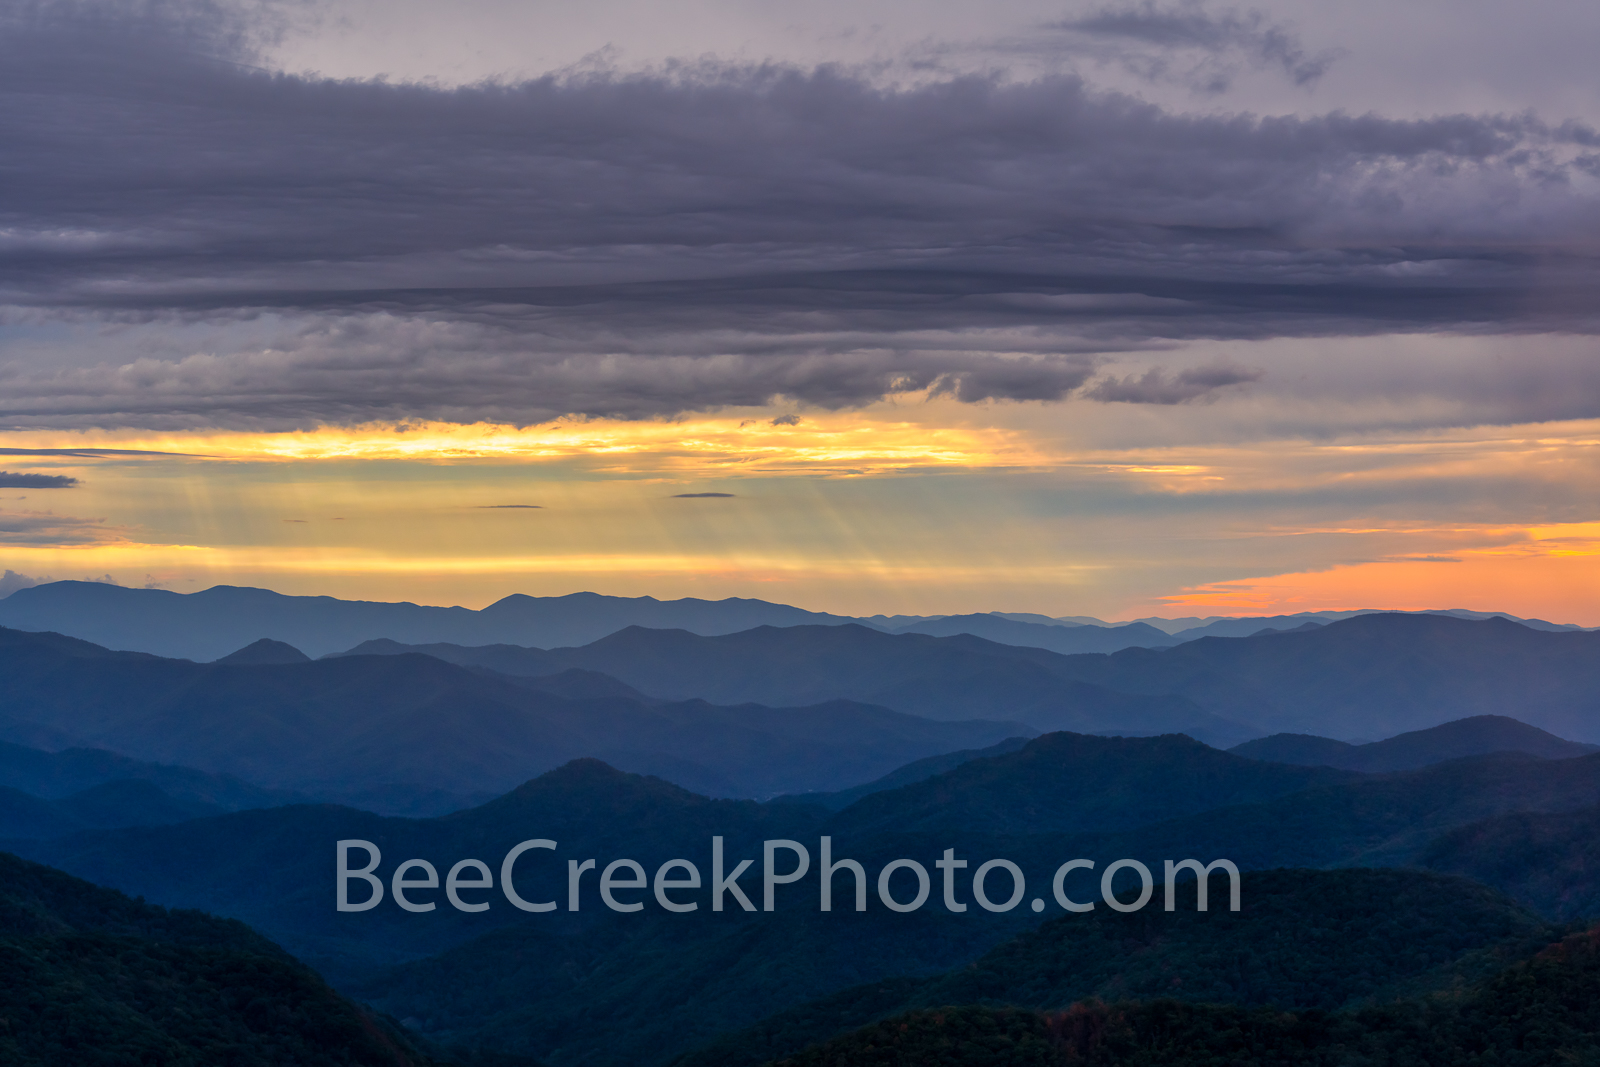 blue ridge, blue ridge mountains, blue ridge parkway, blue ridge mountain, great smoky mountains, mountains, smokies, great smoky mountains national park, applachia, overlook, sunset, sunrise, color, , photo